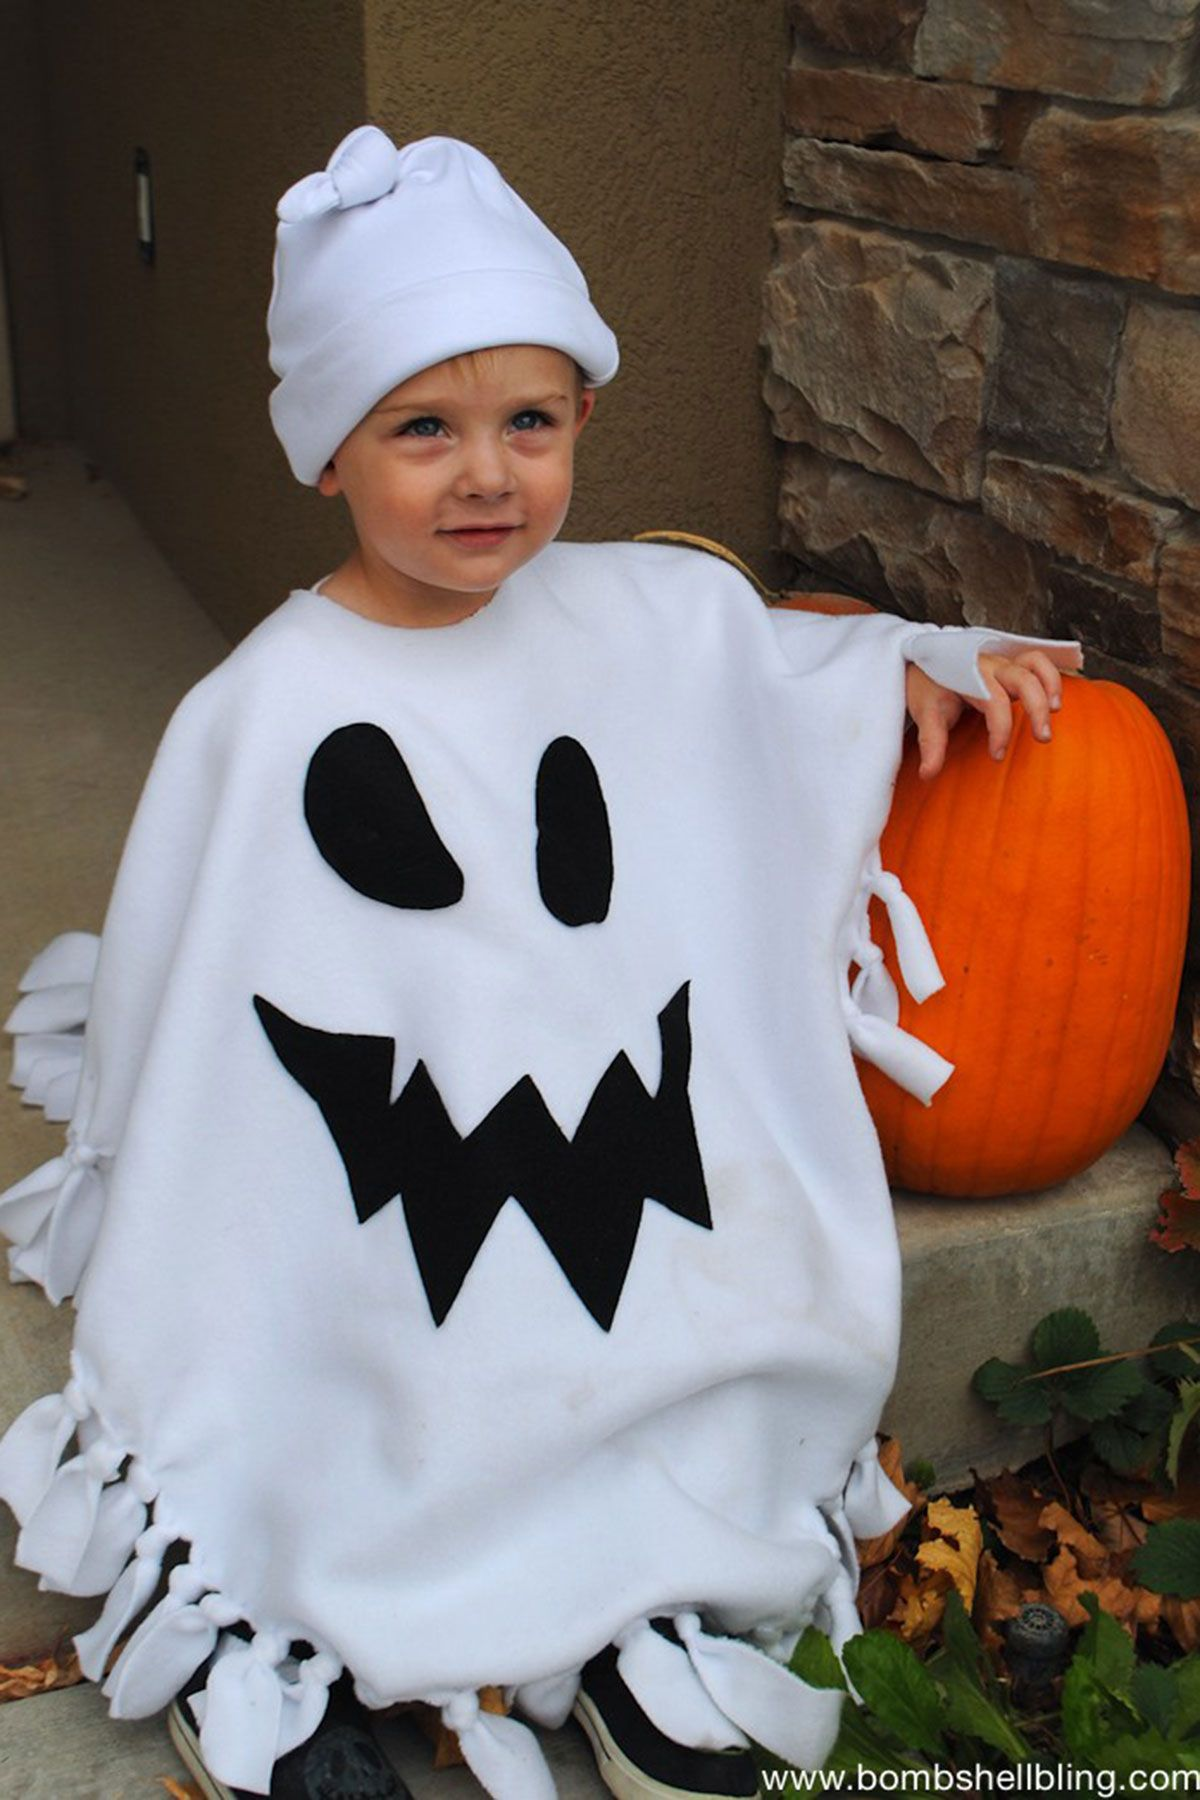 70 homemade halloween costumes for kids easy diy kids halloween 70 homemade halloween costumes for kids easy diy kids halloween costume ideas 2018 solutioingenieria Images